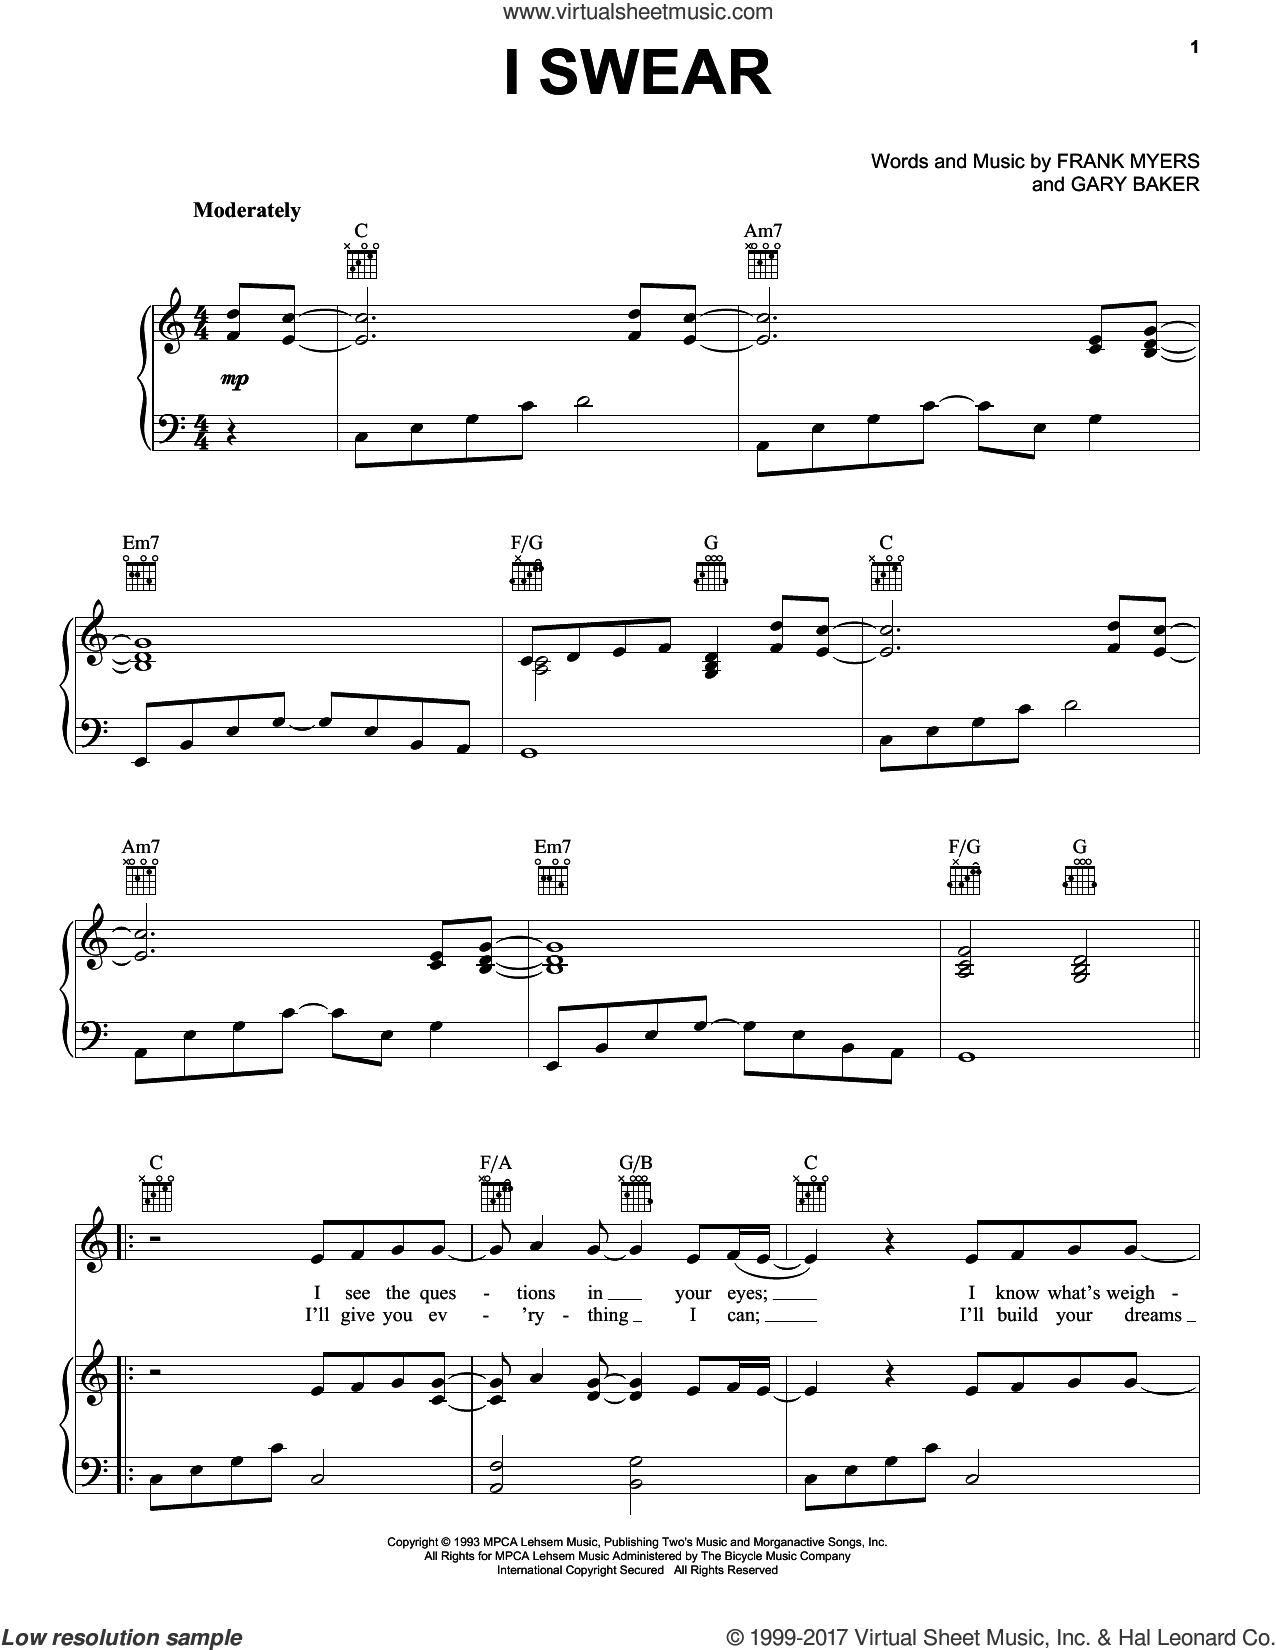 I Swear sheet music for voice, piano or guitar by John Michael Montgomery, All-4-One, David Foster, Frank Myers and Gary Baker, wedding score, intermediate